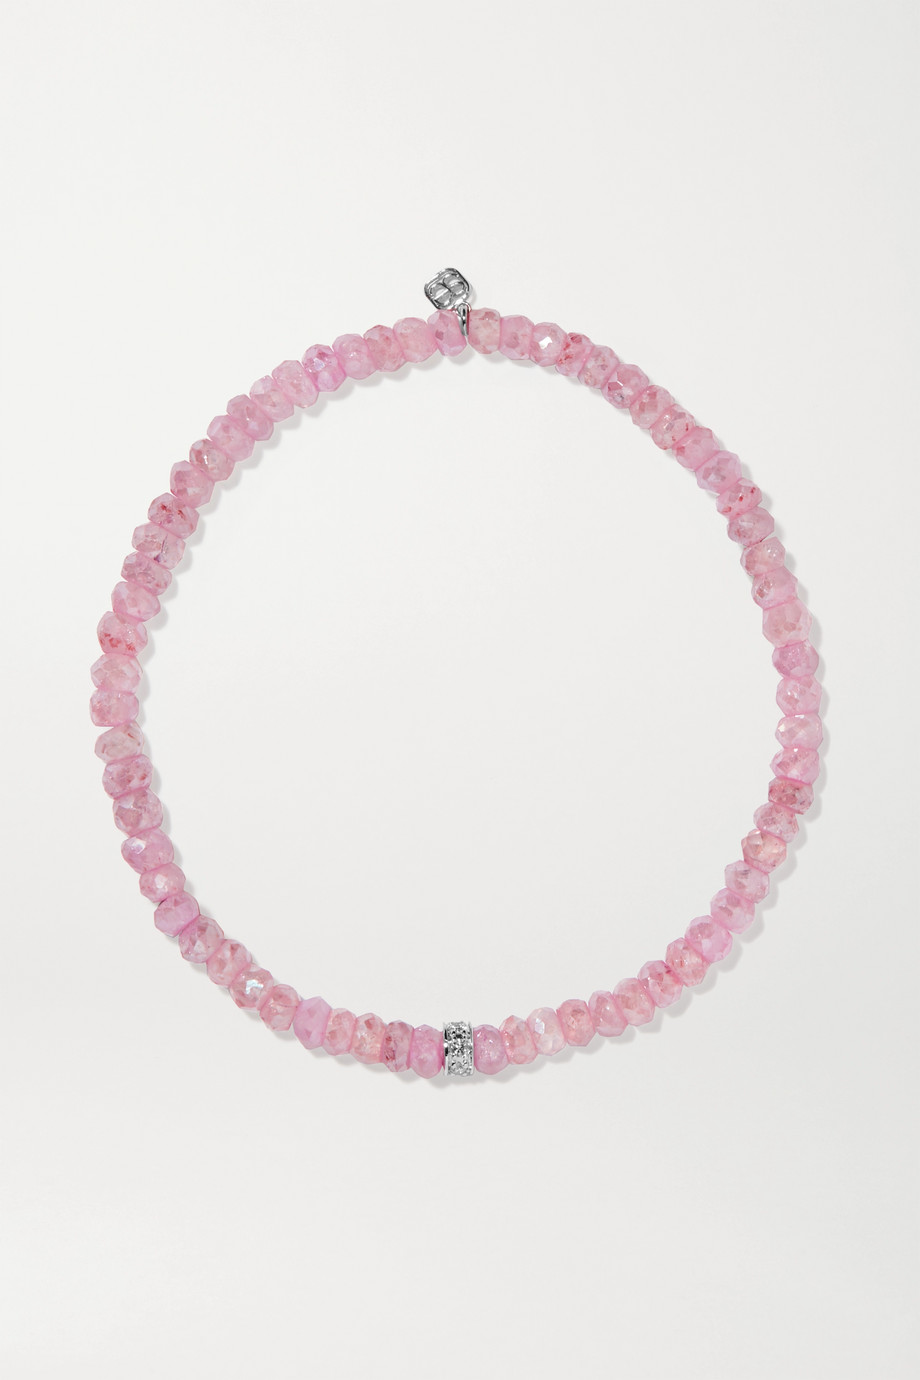 Sydney Evan Bracelet en or 14 carats, grapolites et diamants